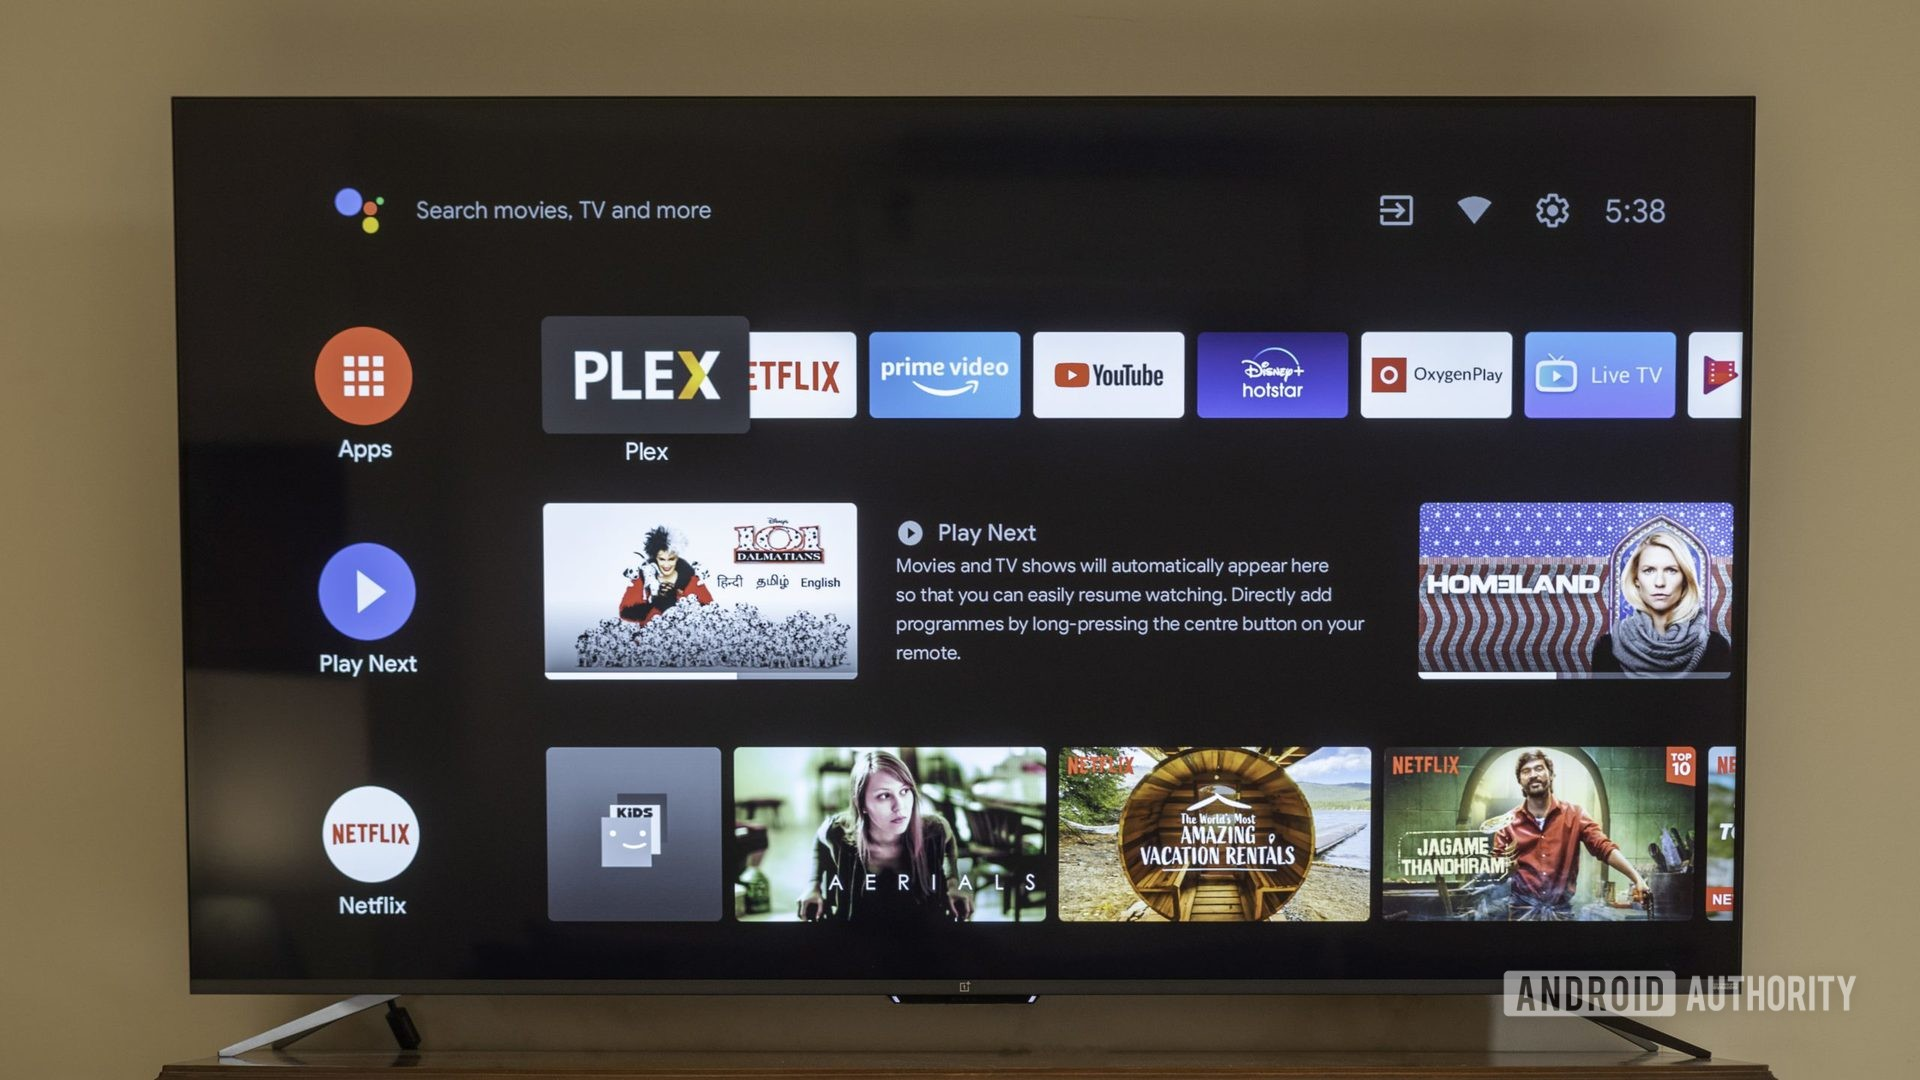 oneplus tv with android tv interface